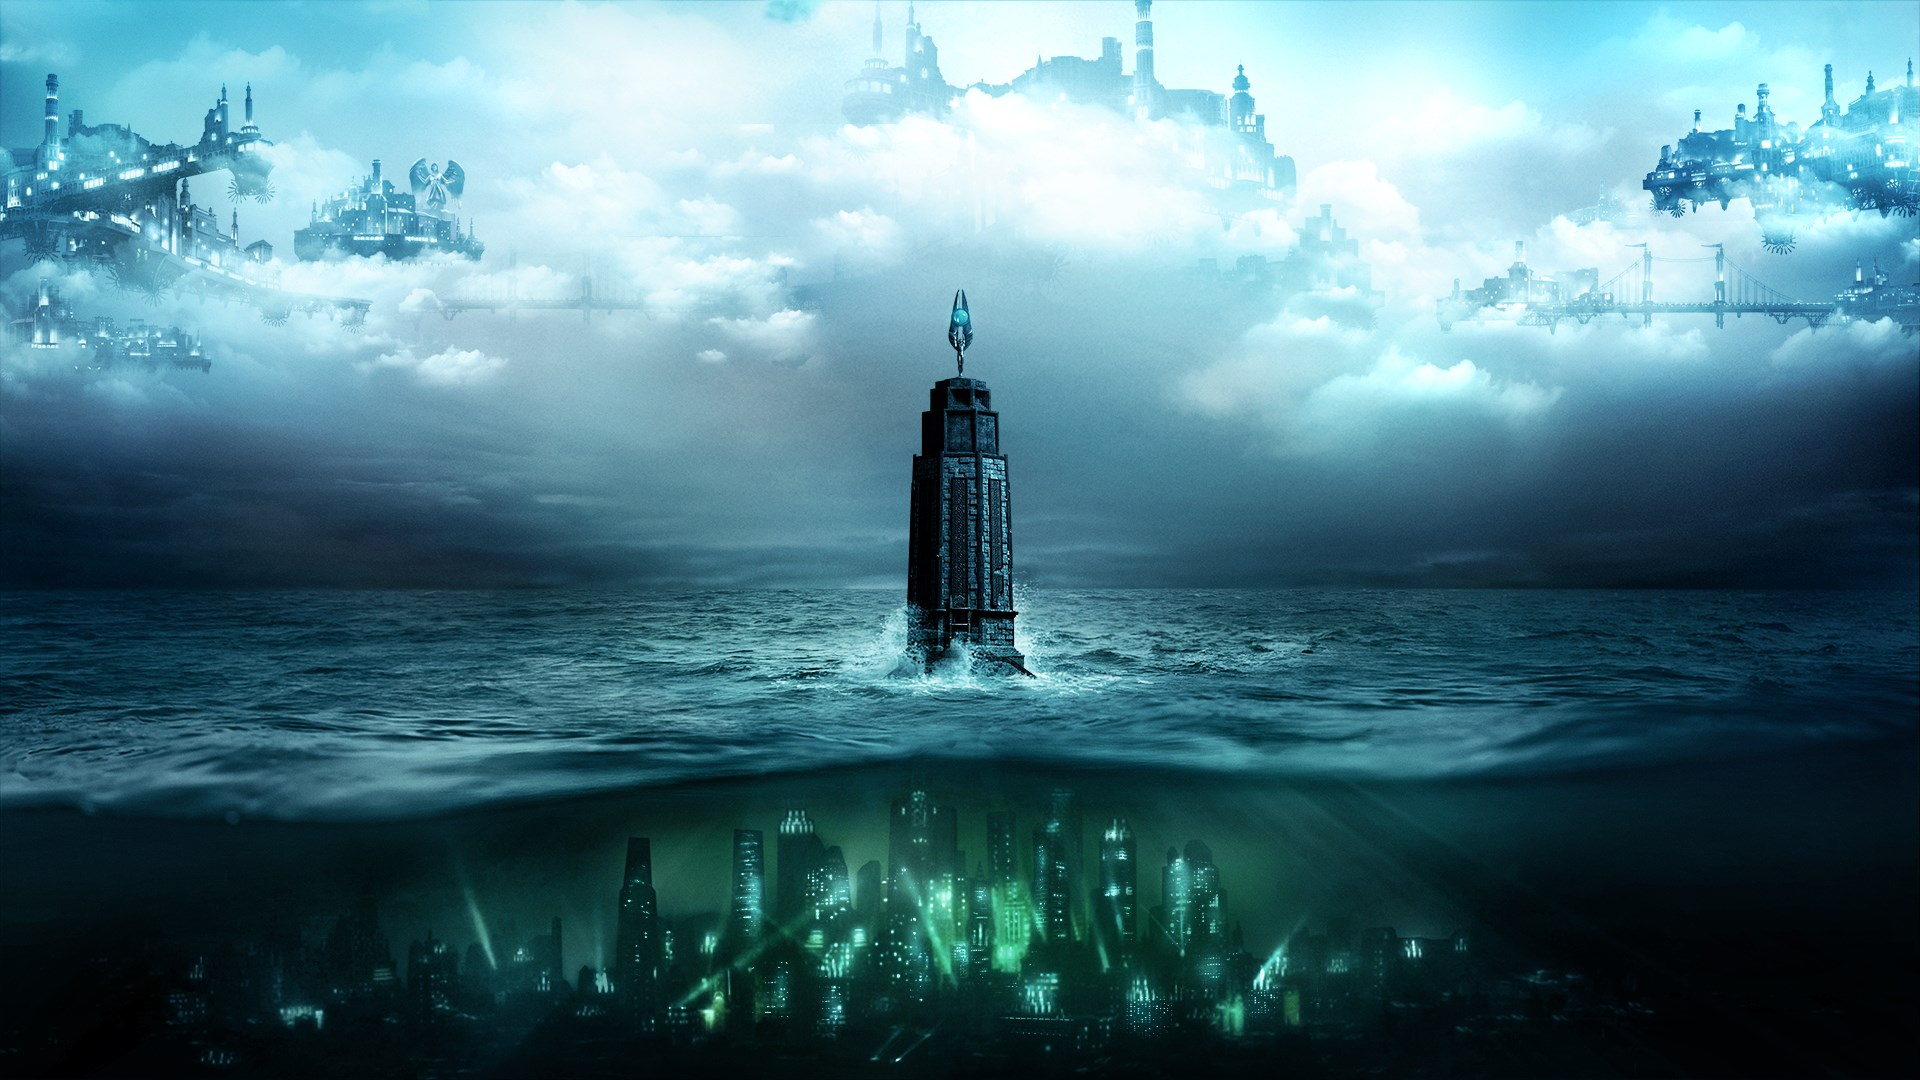 Bioshock lighthouse centered in the ocean between the undersea city of Rapture and the cloud city of Columbia